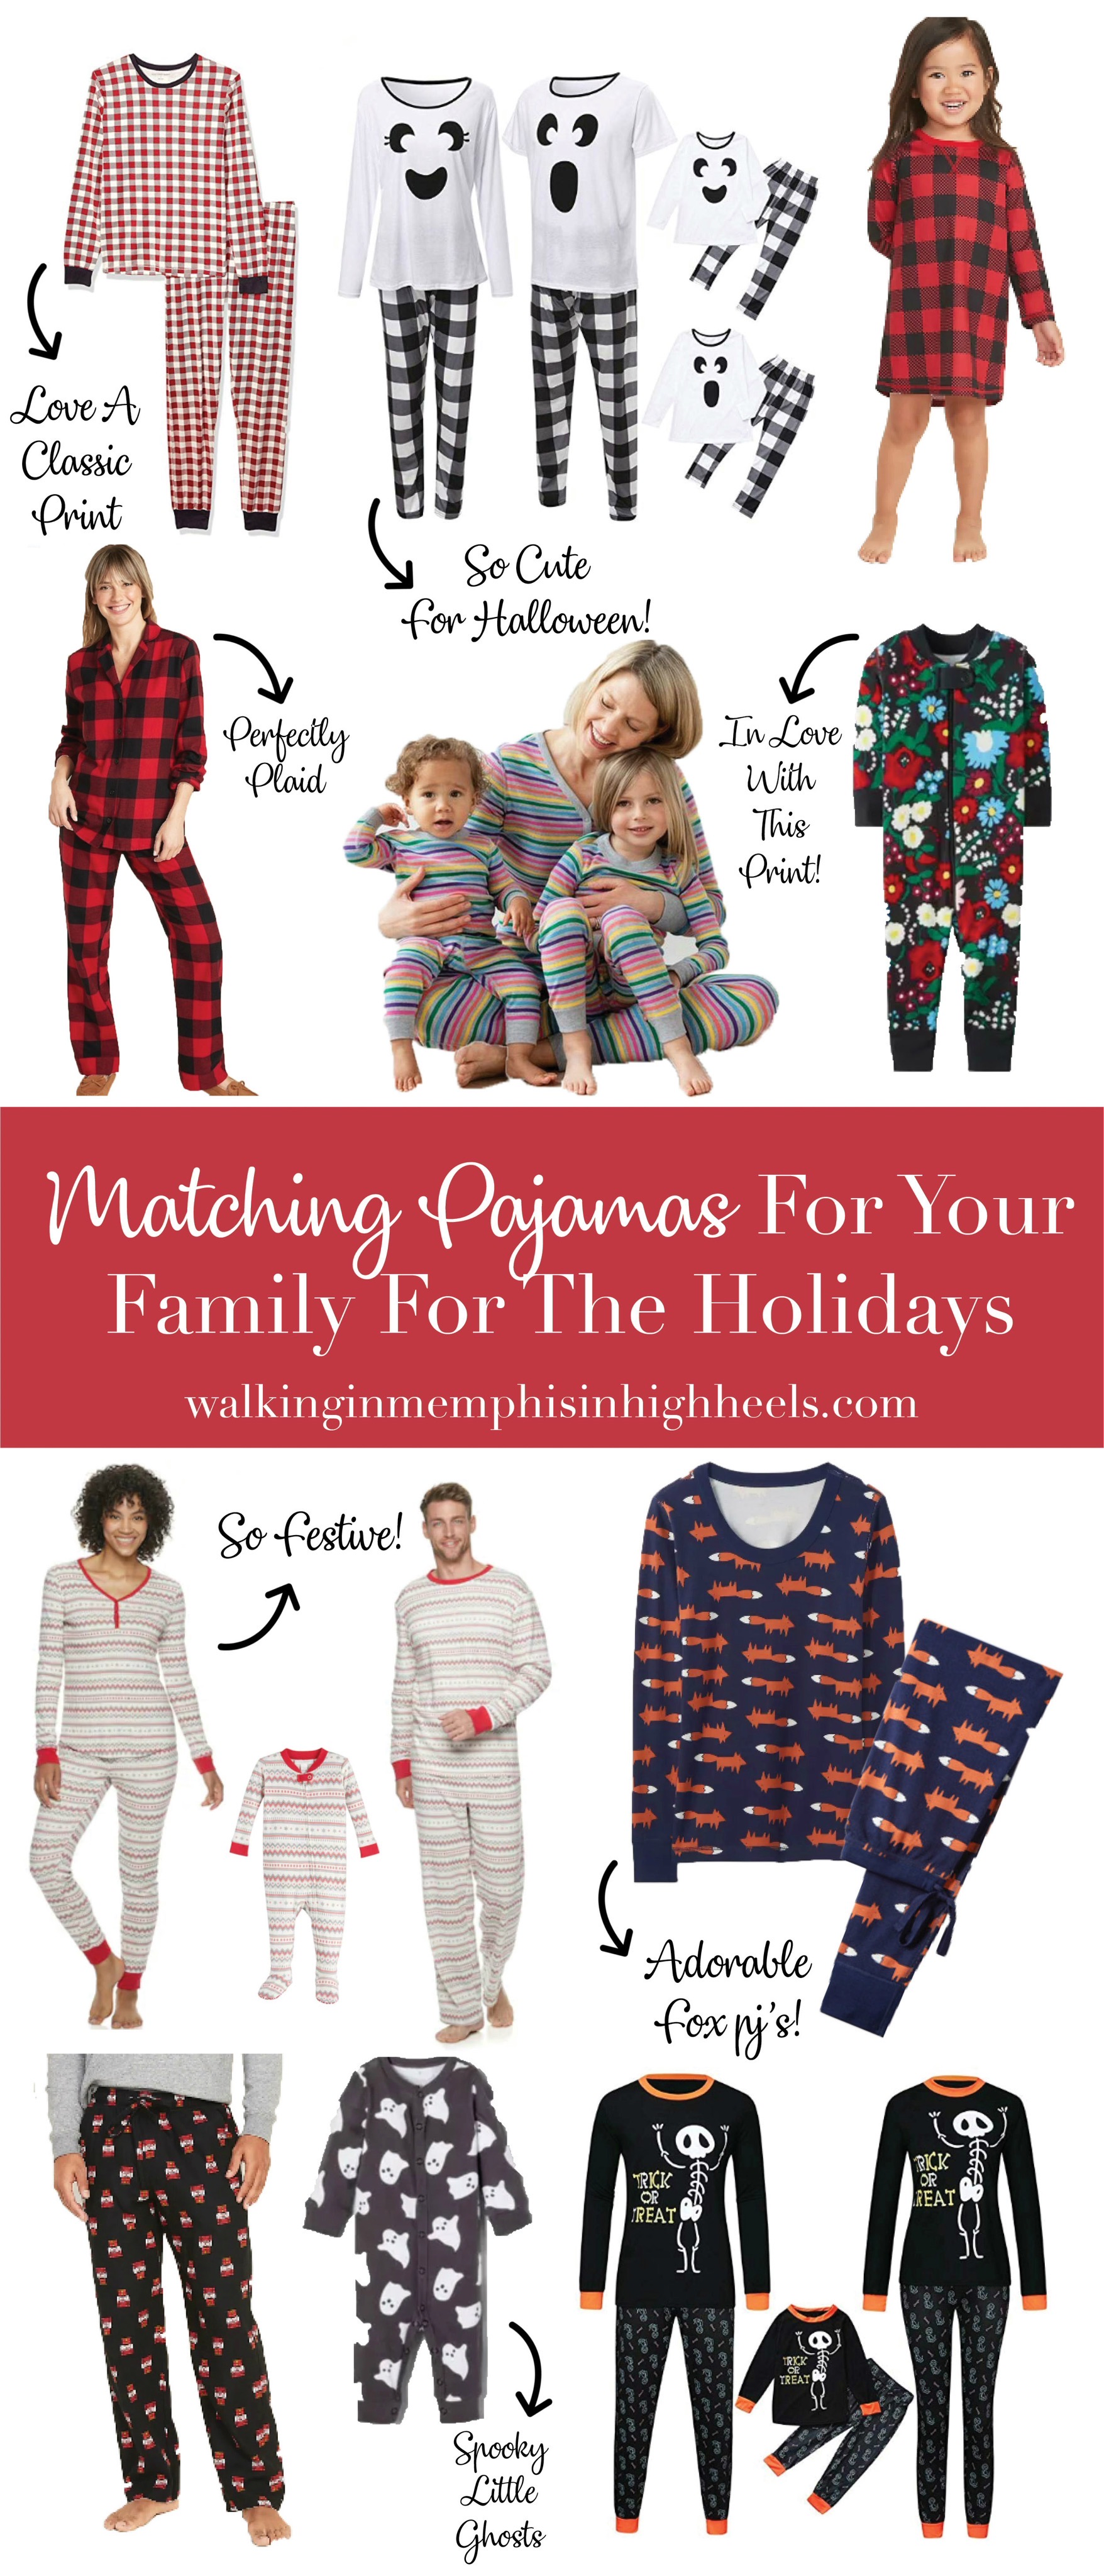 Matching Pajamas for Your Entire Family for the Holidays